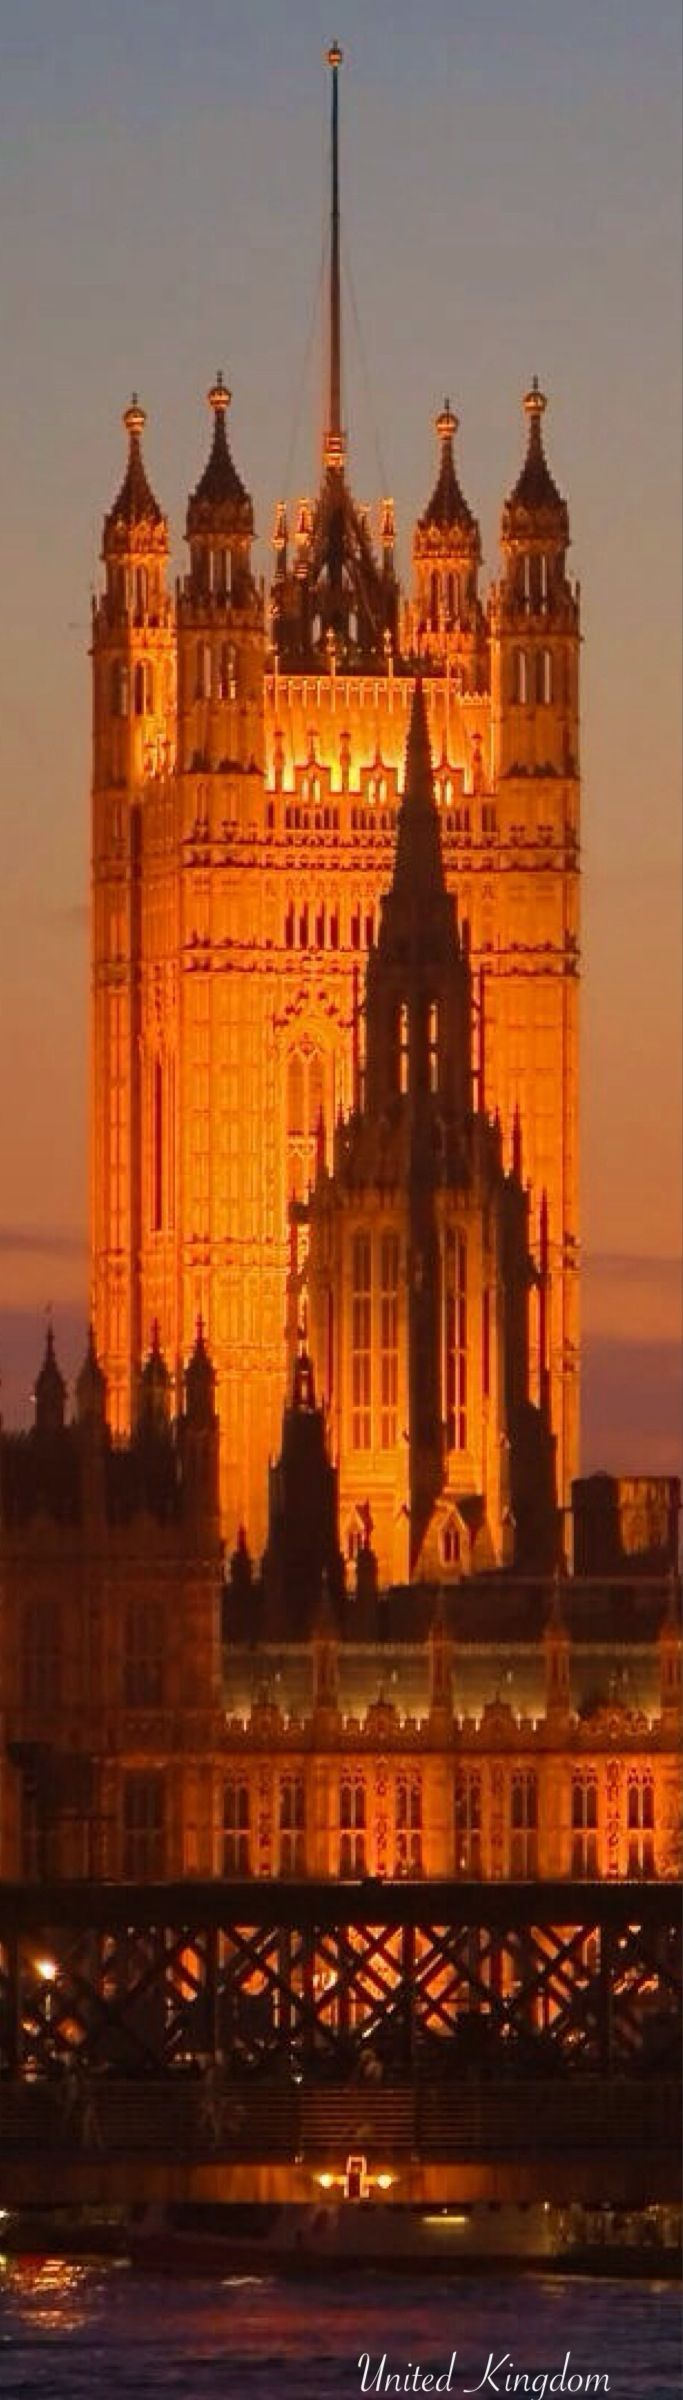 ~Palace of Westminster - Houses of Parliament, London | The House of Beccaria